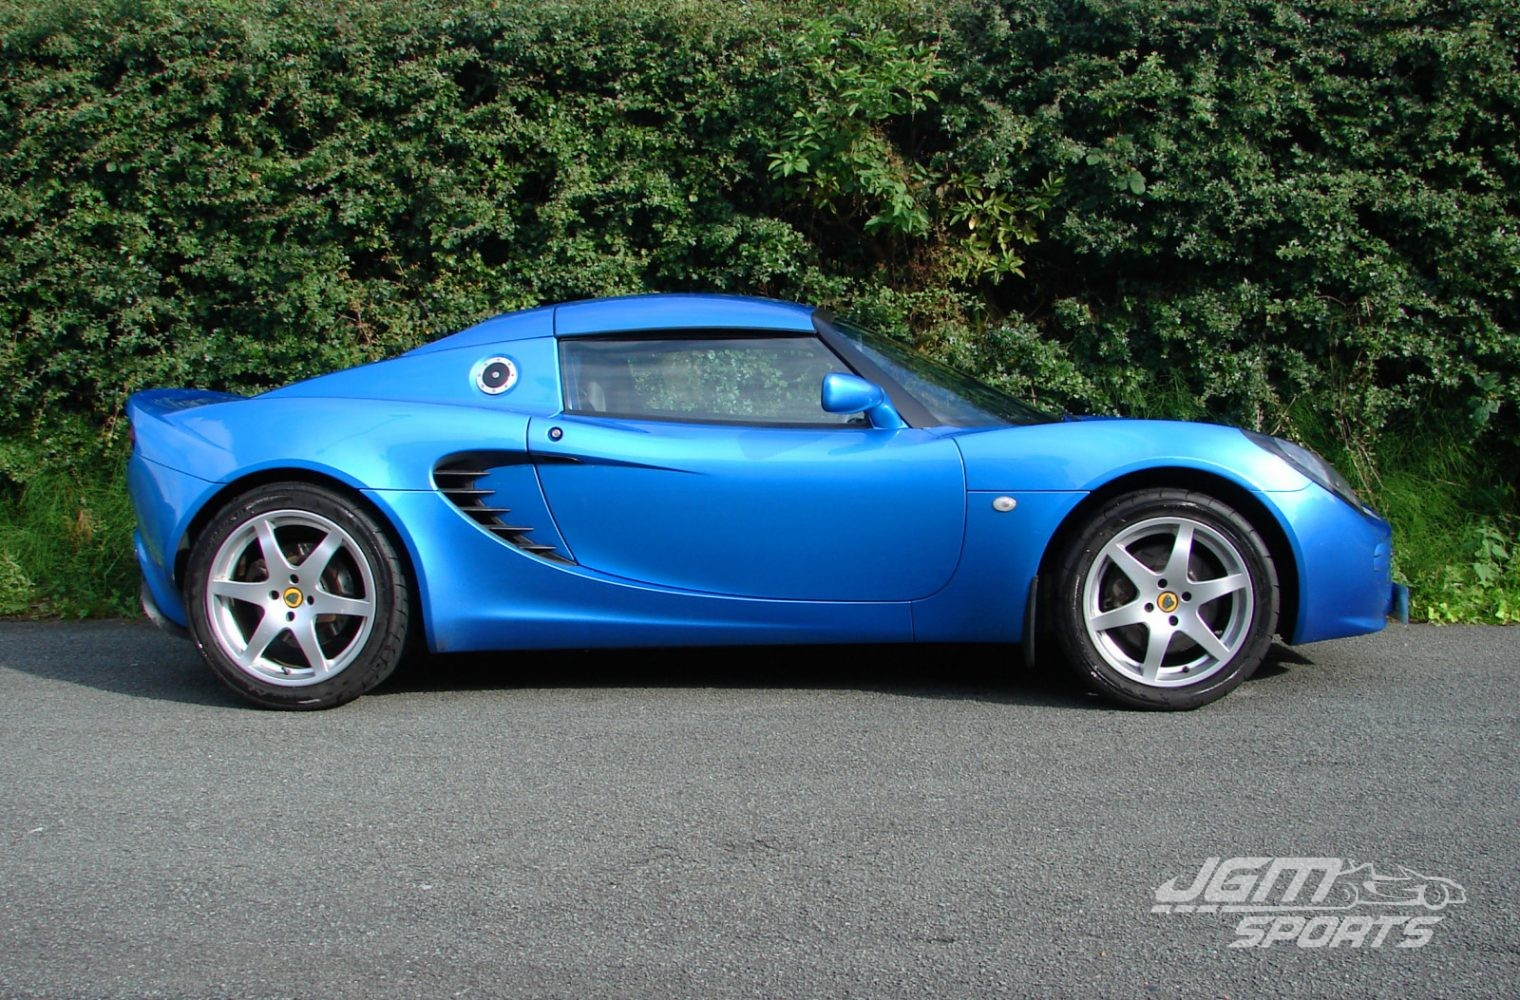 Cars for sale jgmsports sold 2001 s2 lotus elise lazer blue short roof conversion with no expense spared history vanachro Images